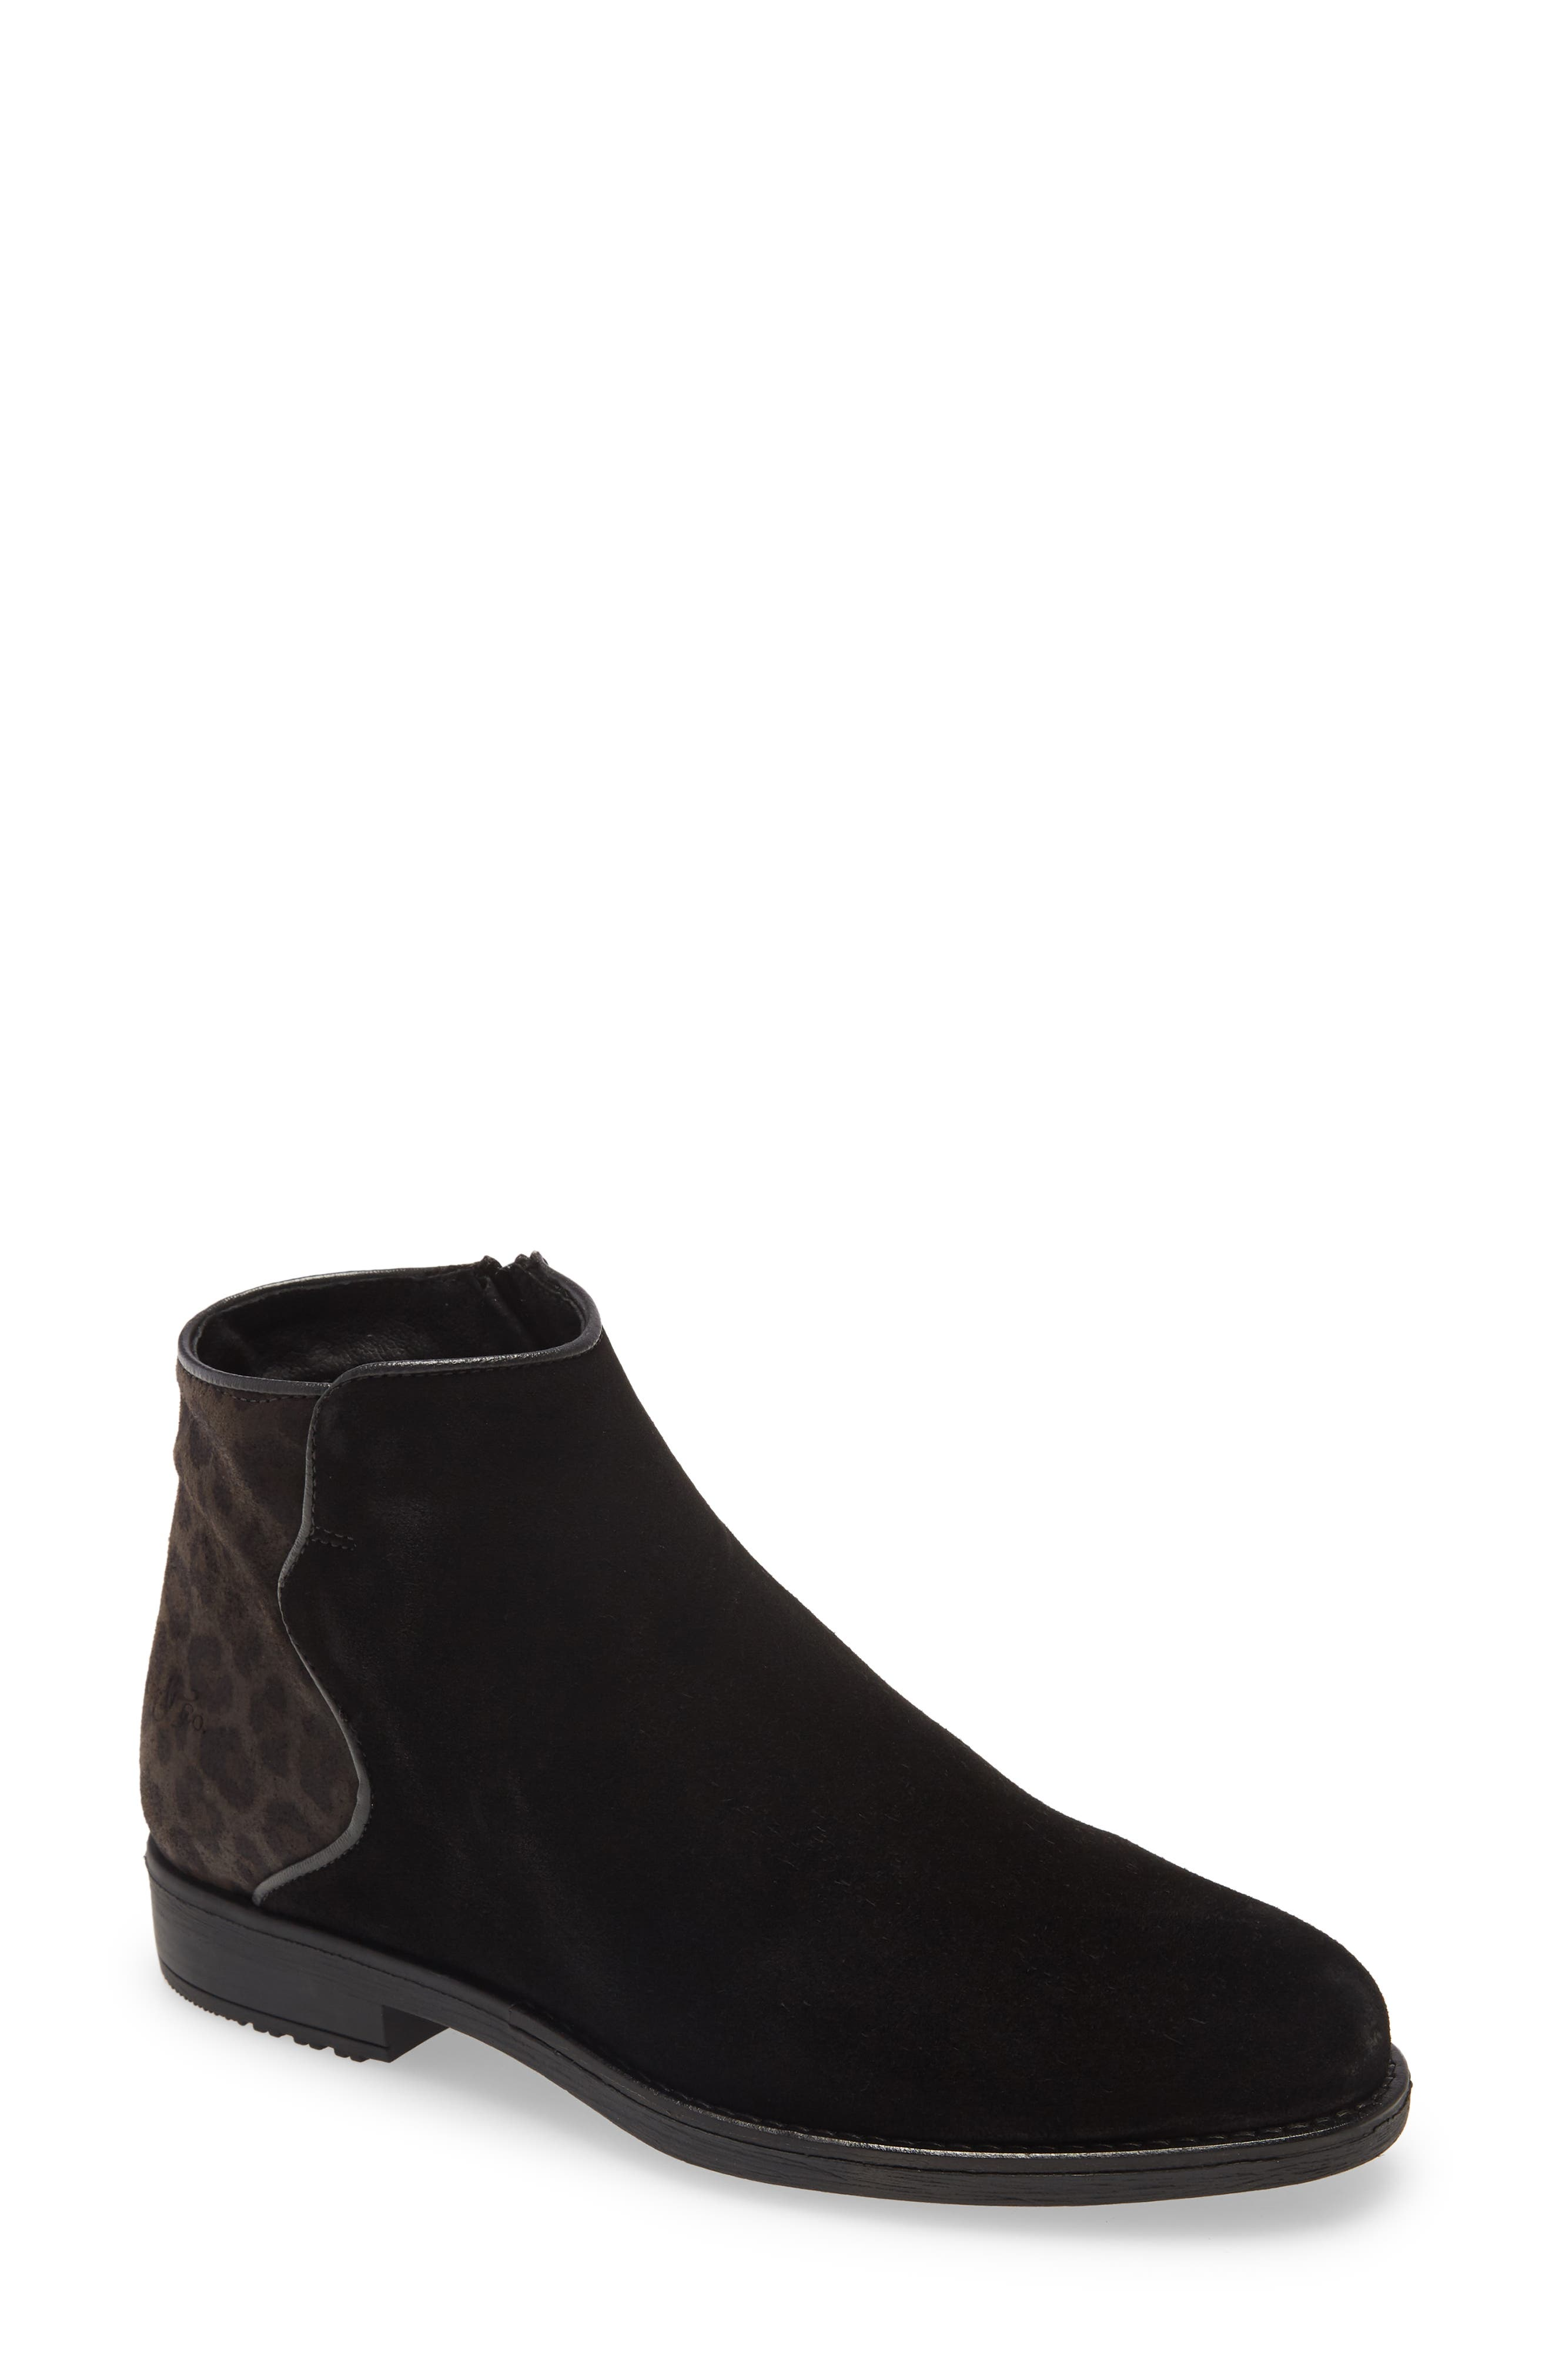 Piped edging highlights the subtle curves of a lug-sole bootie that\\\'s an elevated yet utilitarian standout. Style Name: Bos. & Co. Rural Bootie (Women). Style Number: 6086146. Available in stores.